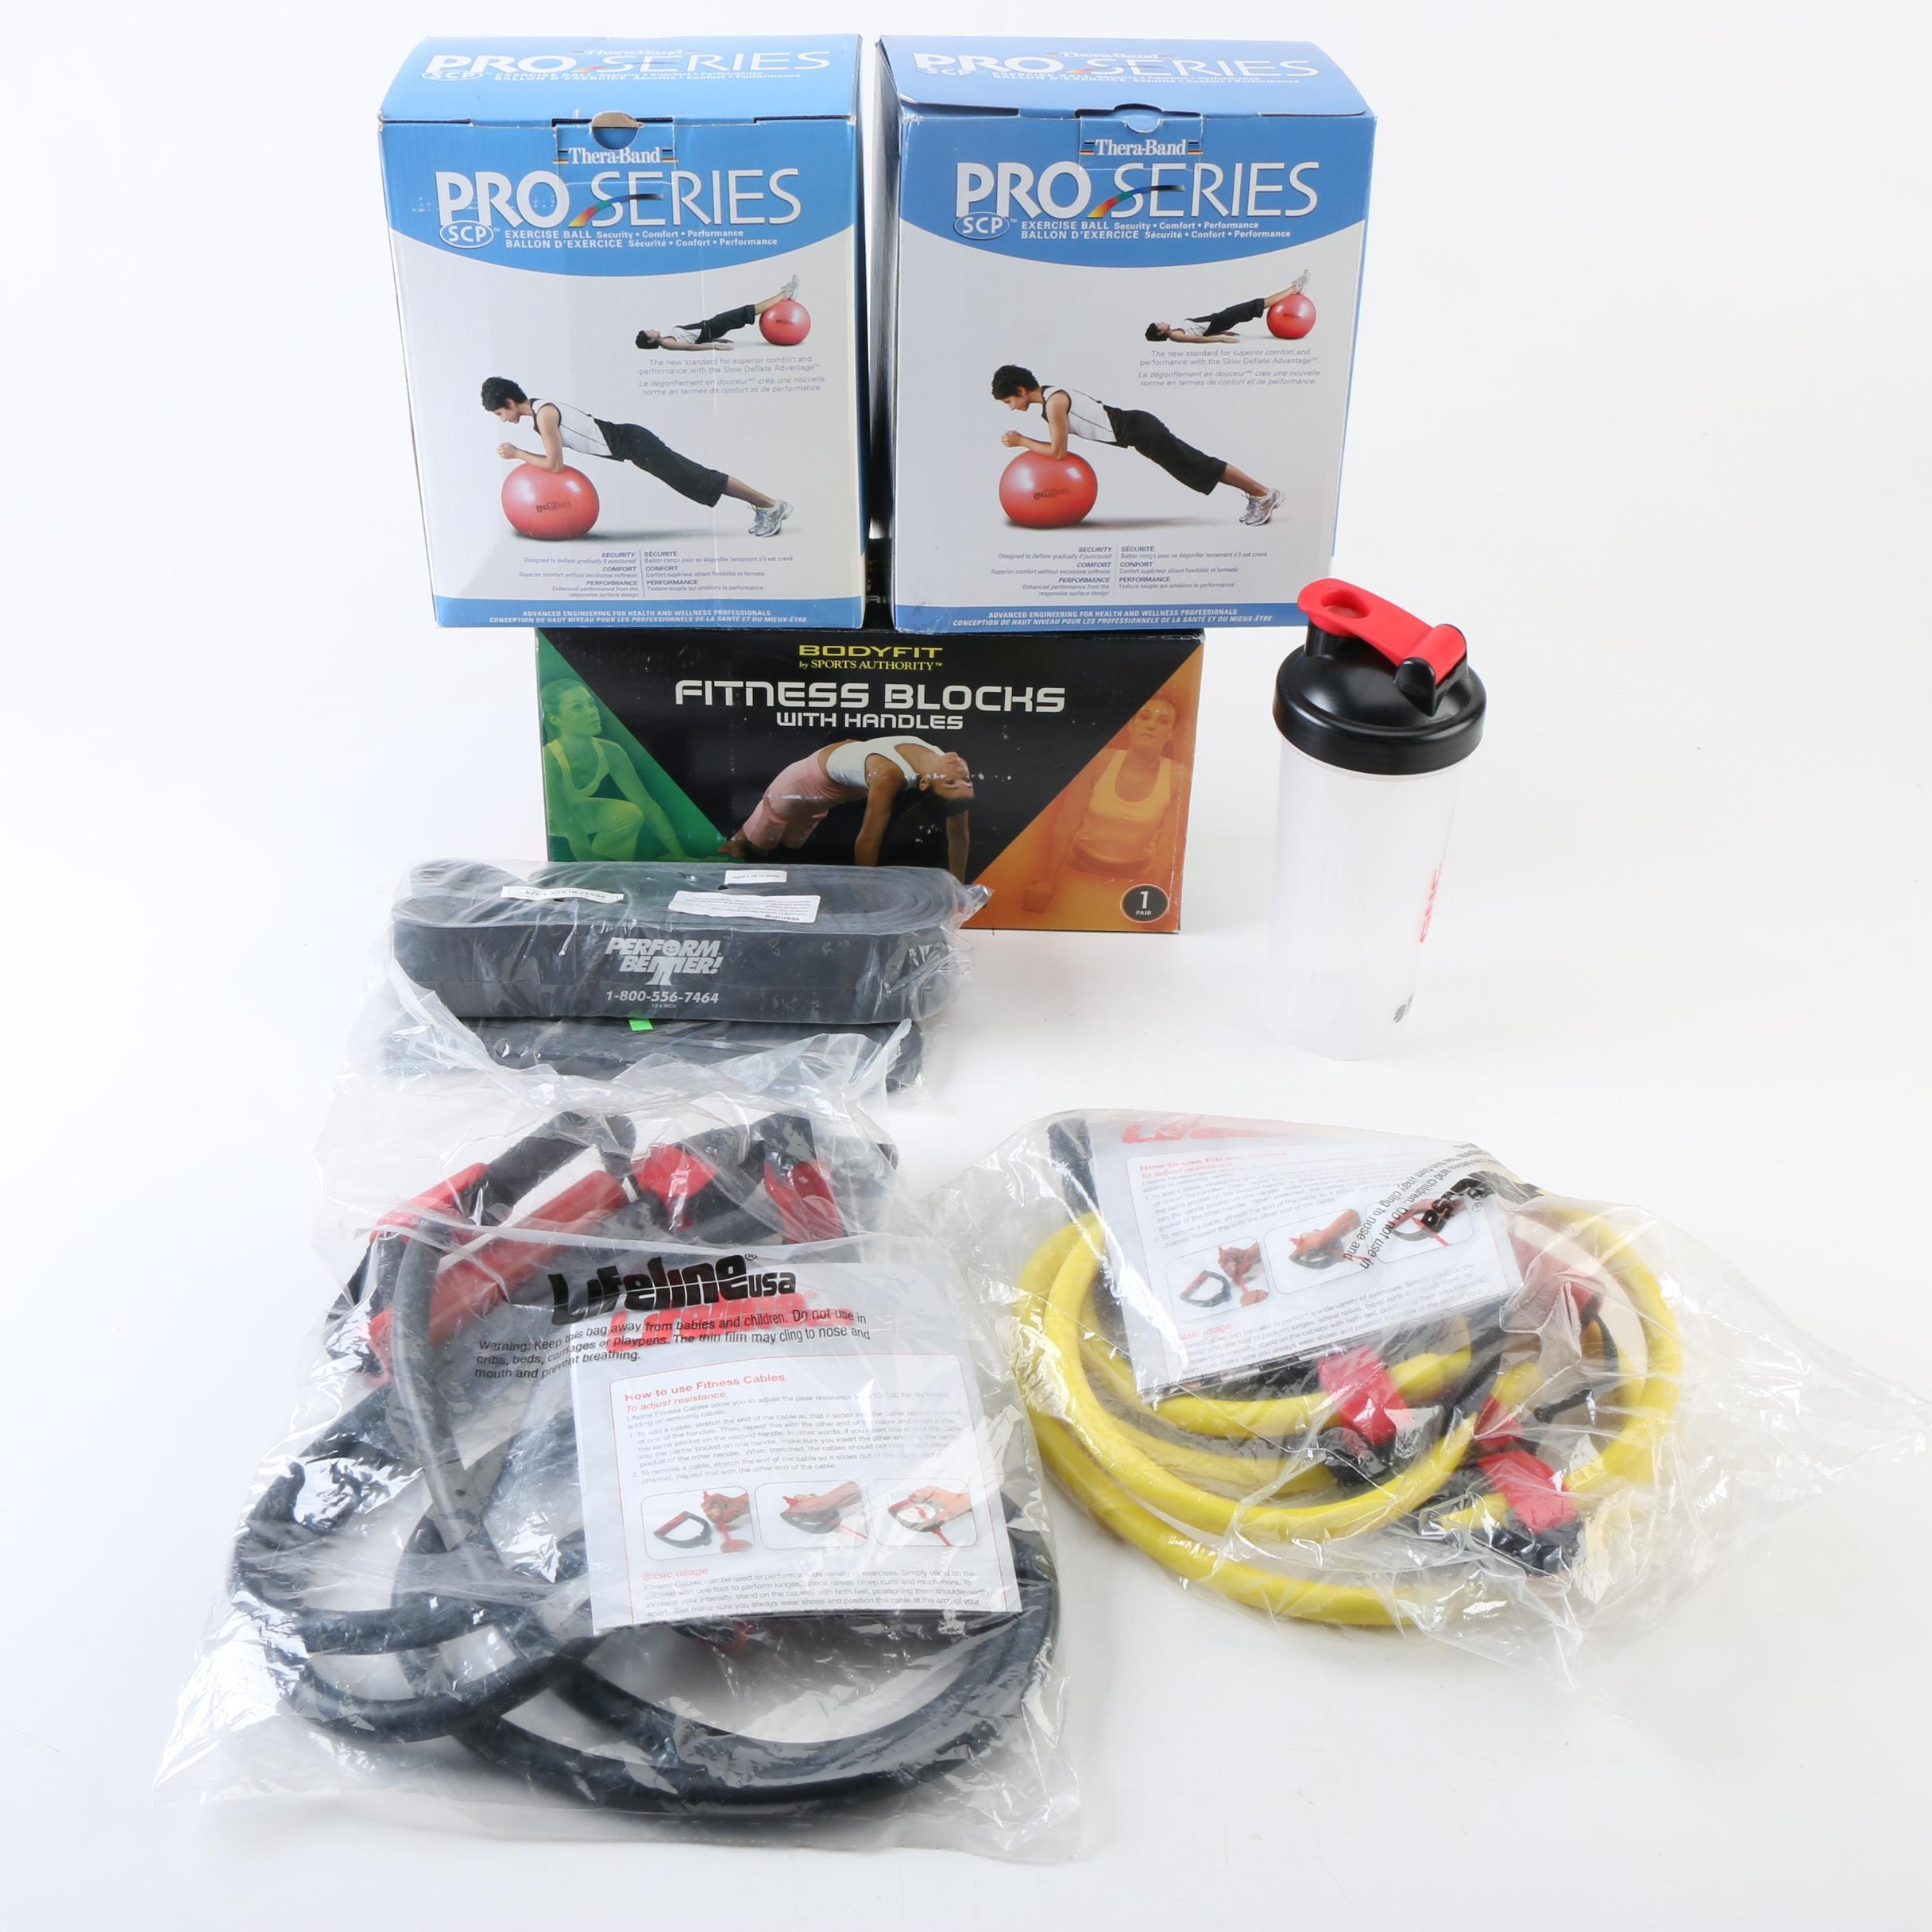 Theraband Pro Series Exercise Balls, Fitness Blocks and Other Fitness Equipment